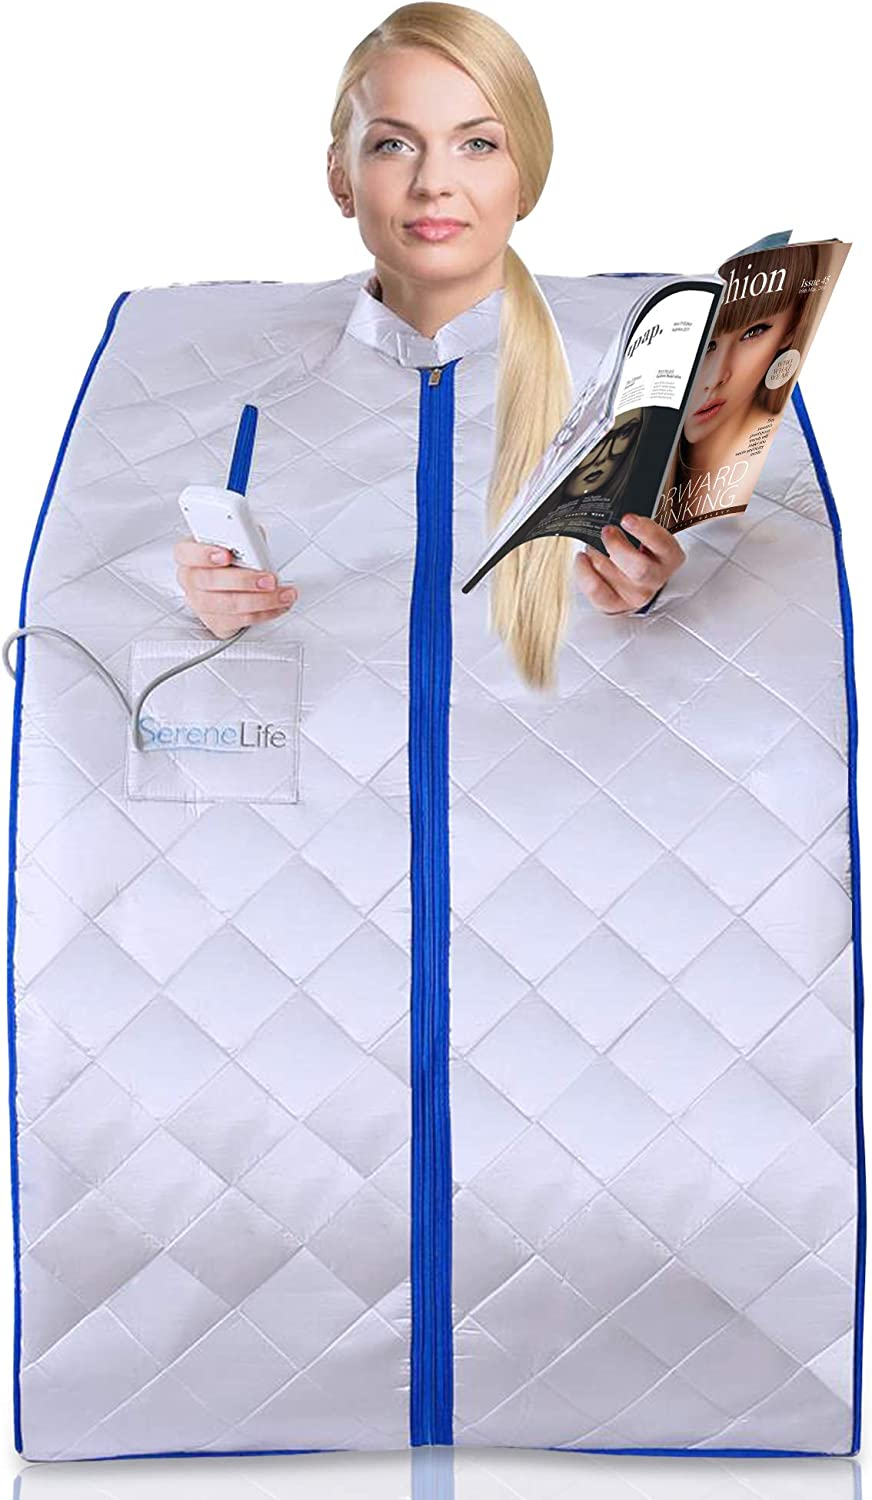 Best Infrared Sauna: SereneLife Portable Home Spa